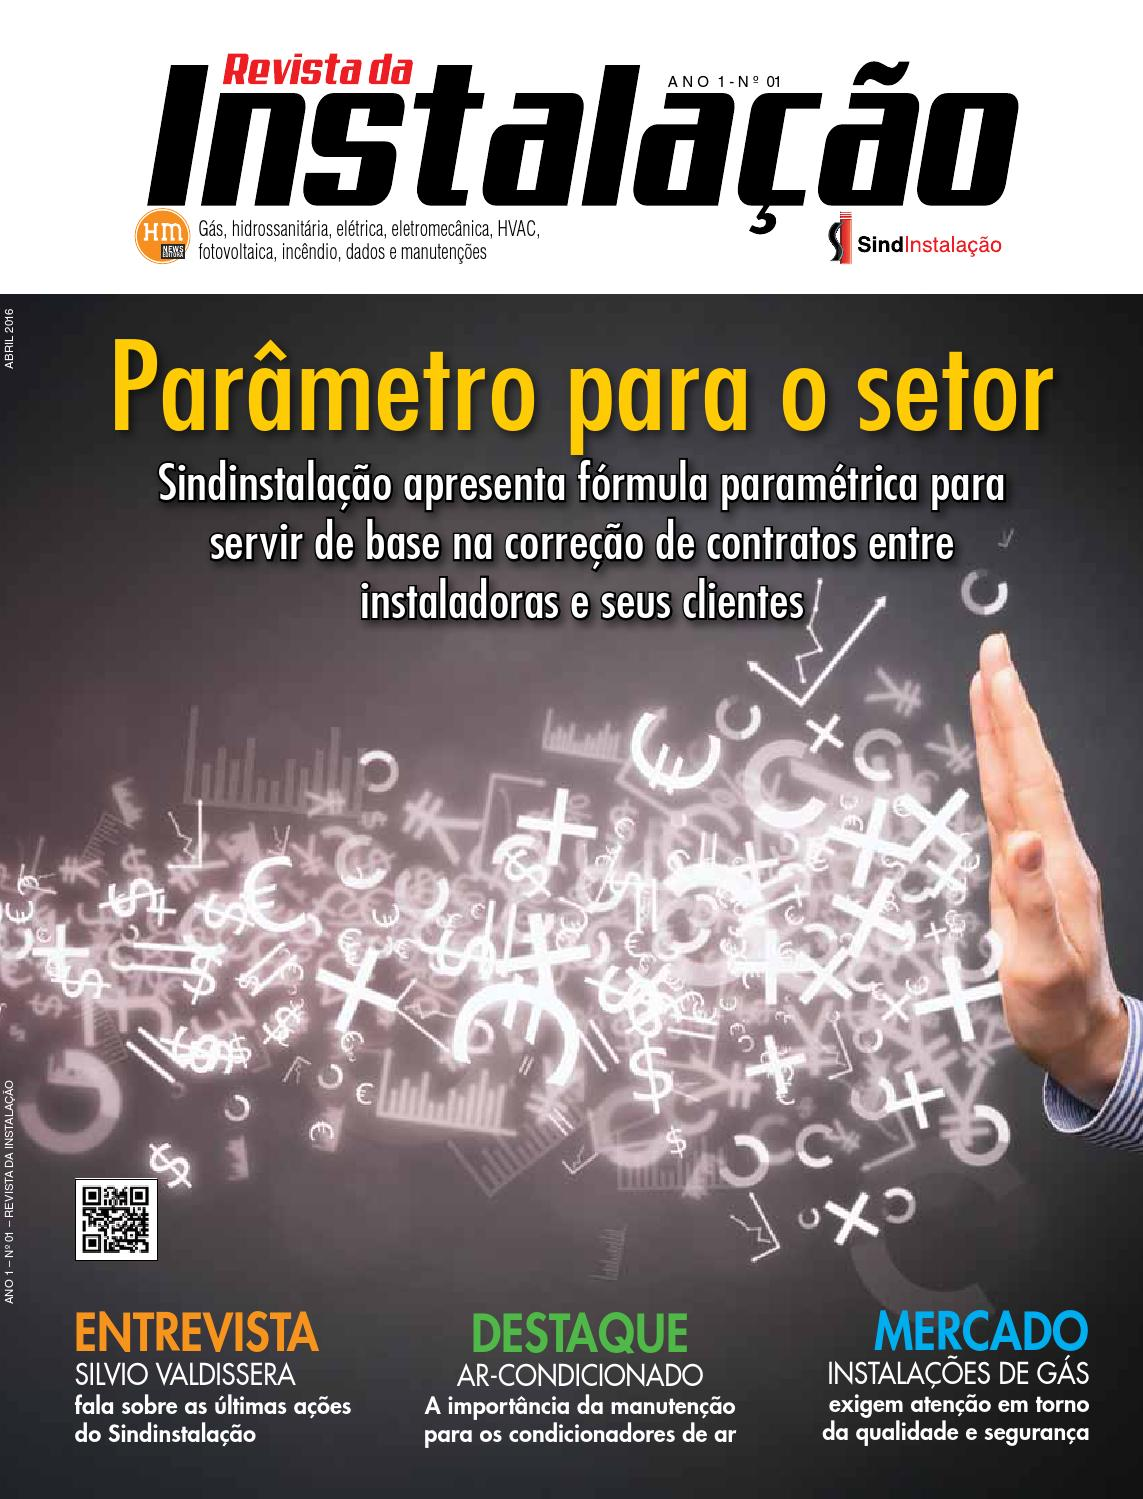 Revista Da Instala O Edi O 01 Abril De 2016 By Revista